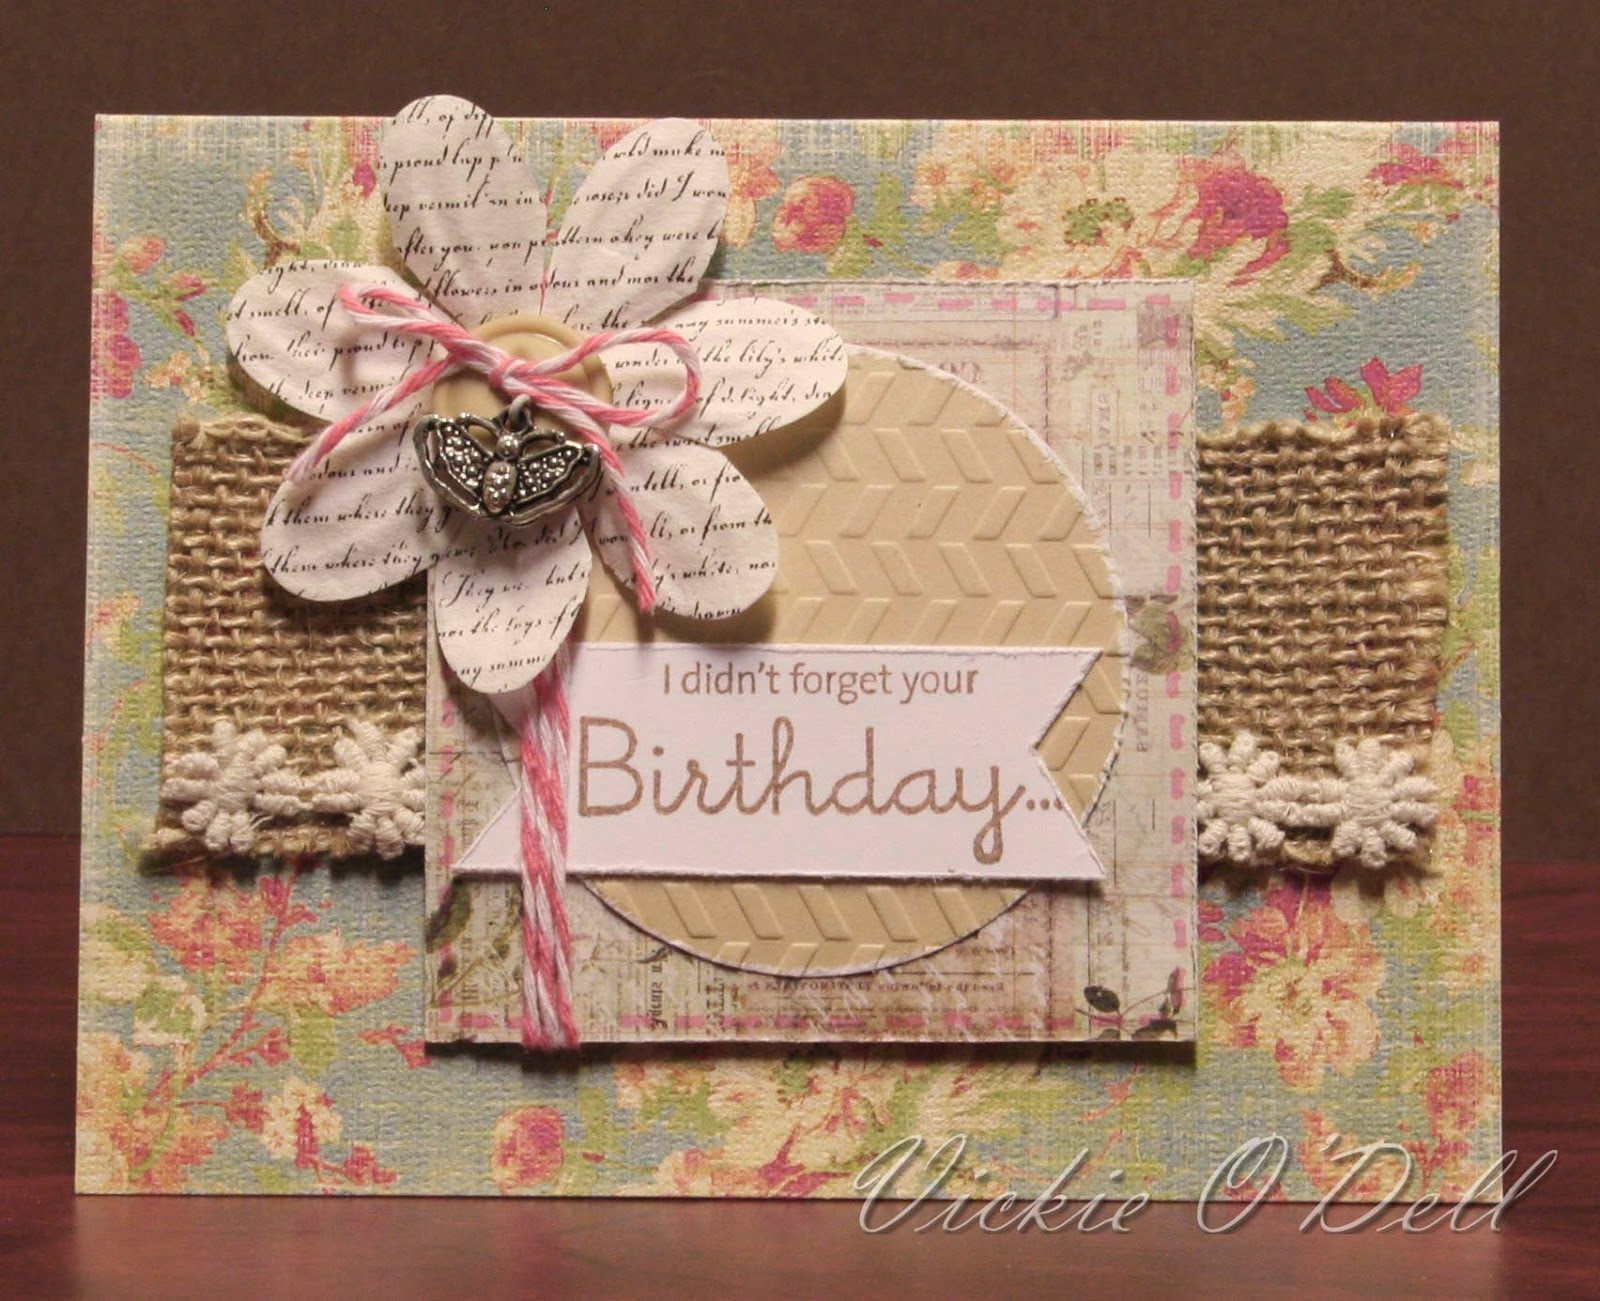 Birthday Wishes Cards For Friend Birthday Wishes – Birthday Cards for Friends